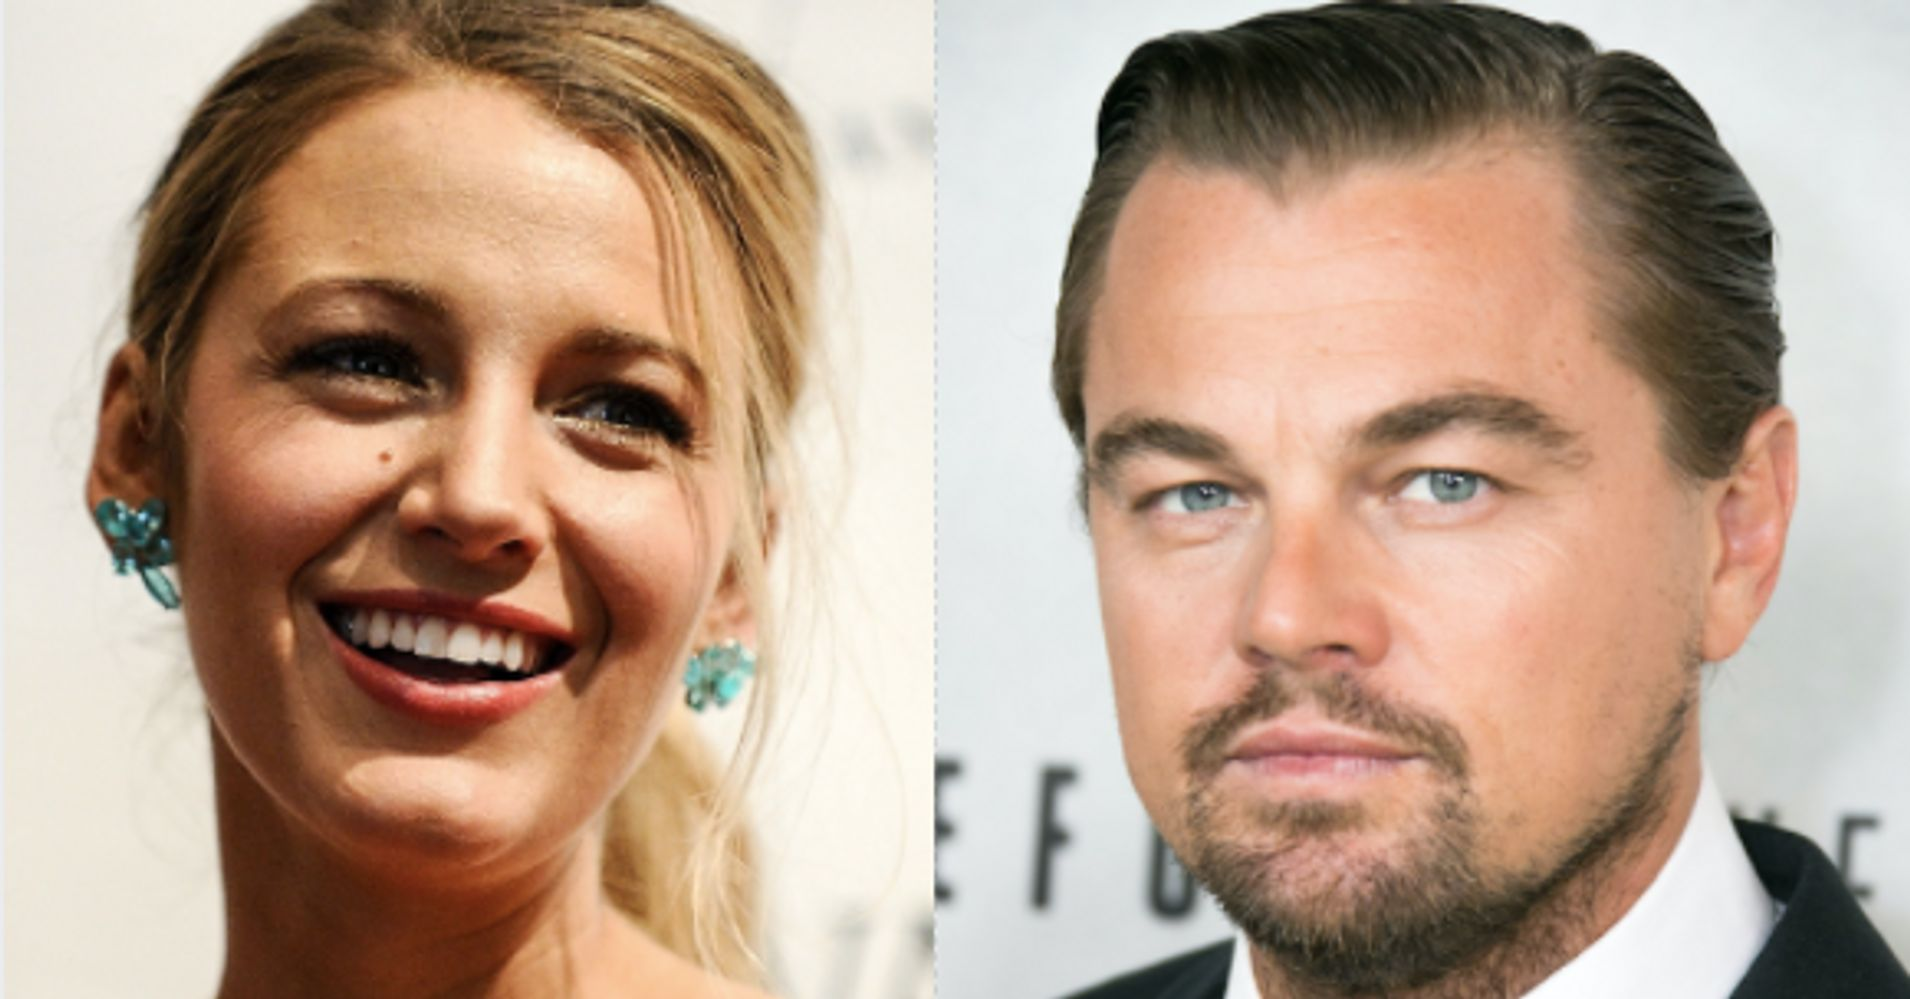 Blake Lively Used To Send Ex Boyfriend Leonardo Dicaprio Photos Of